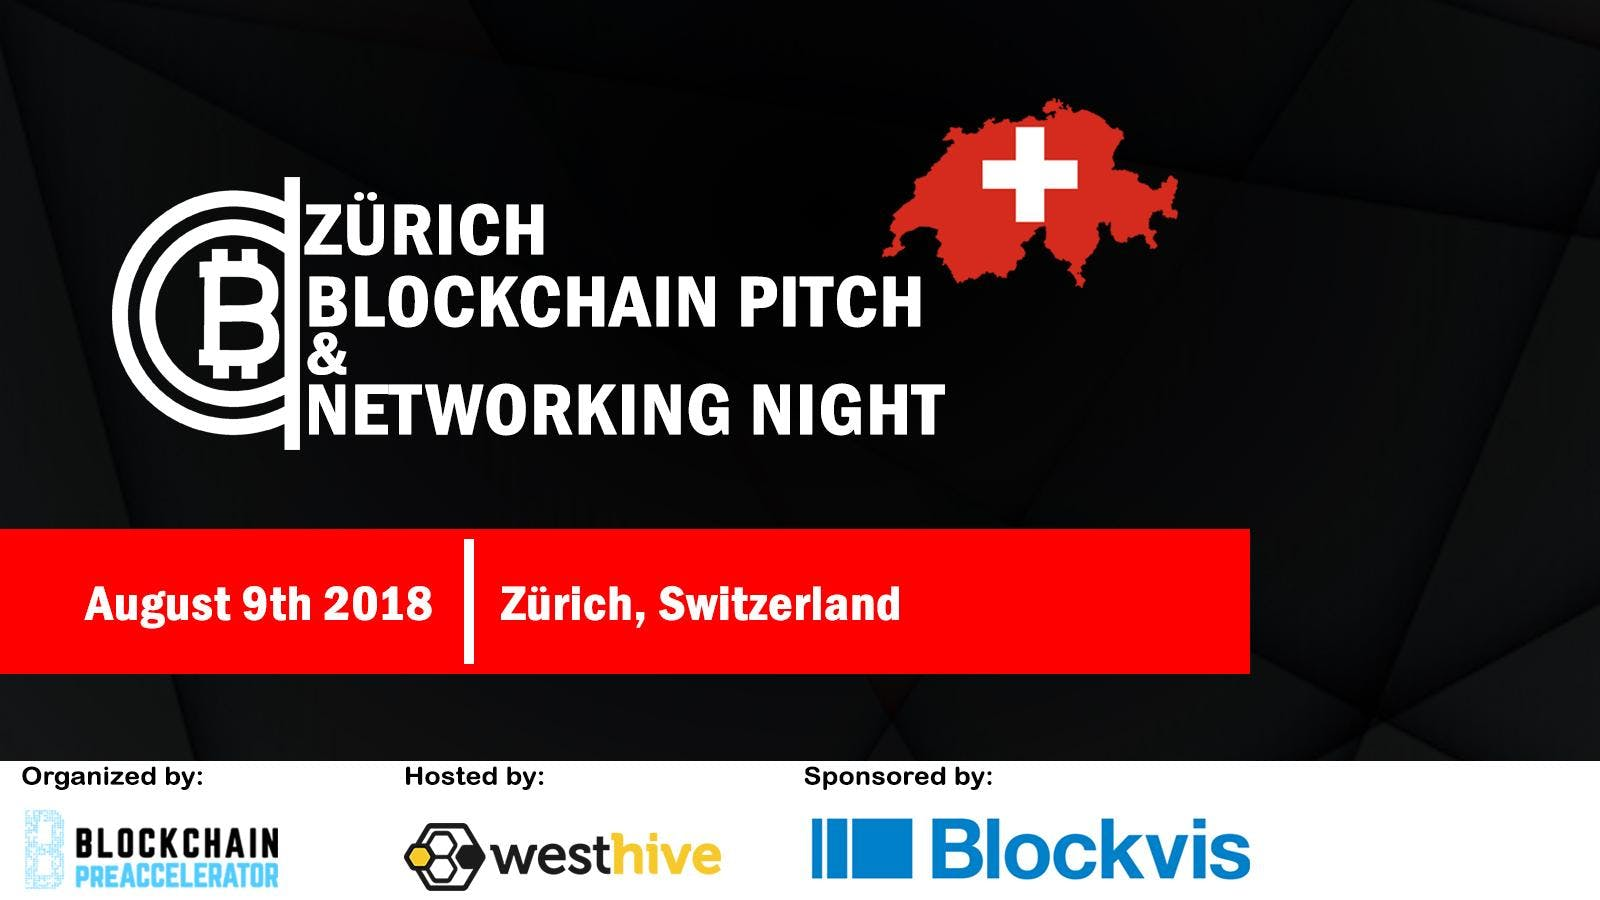 Blockchain Pitch and Networking Night